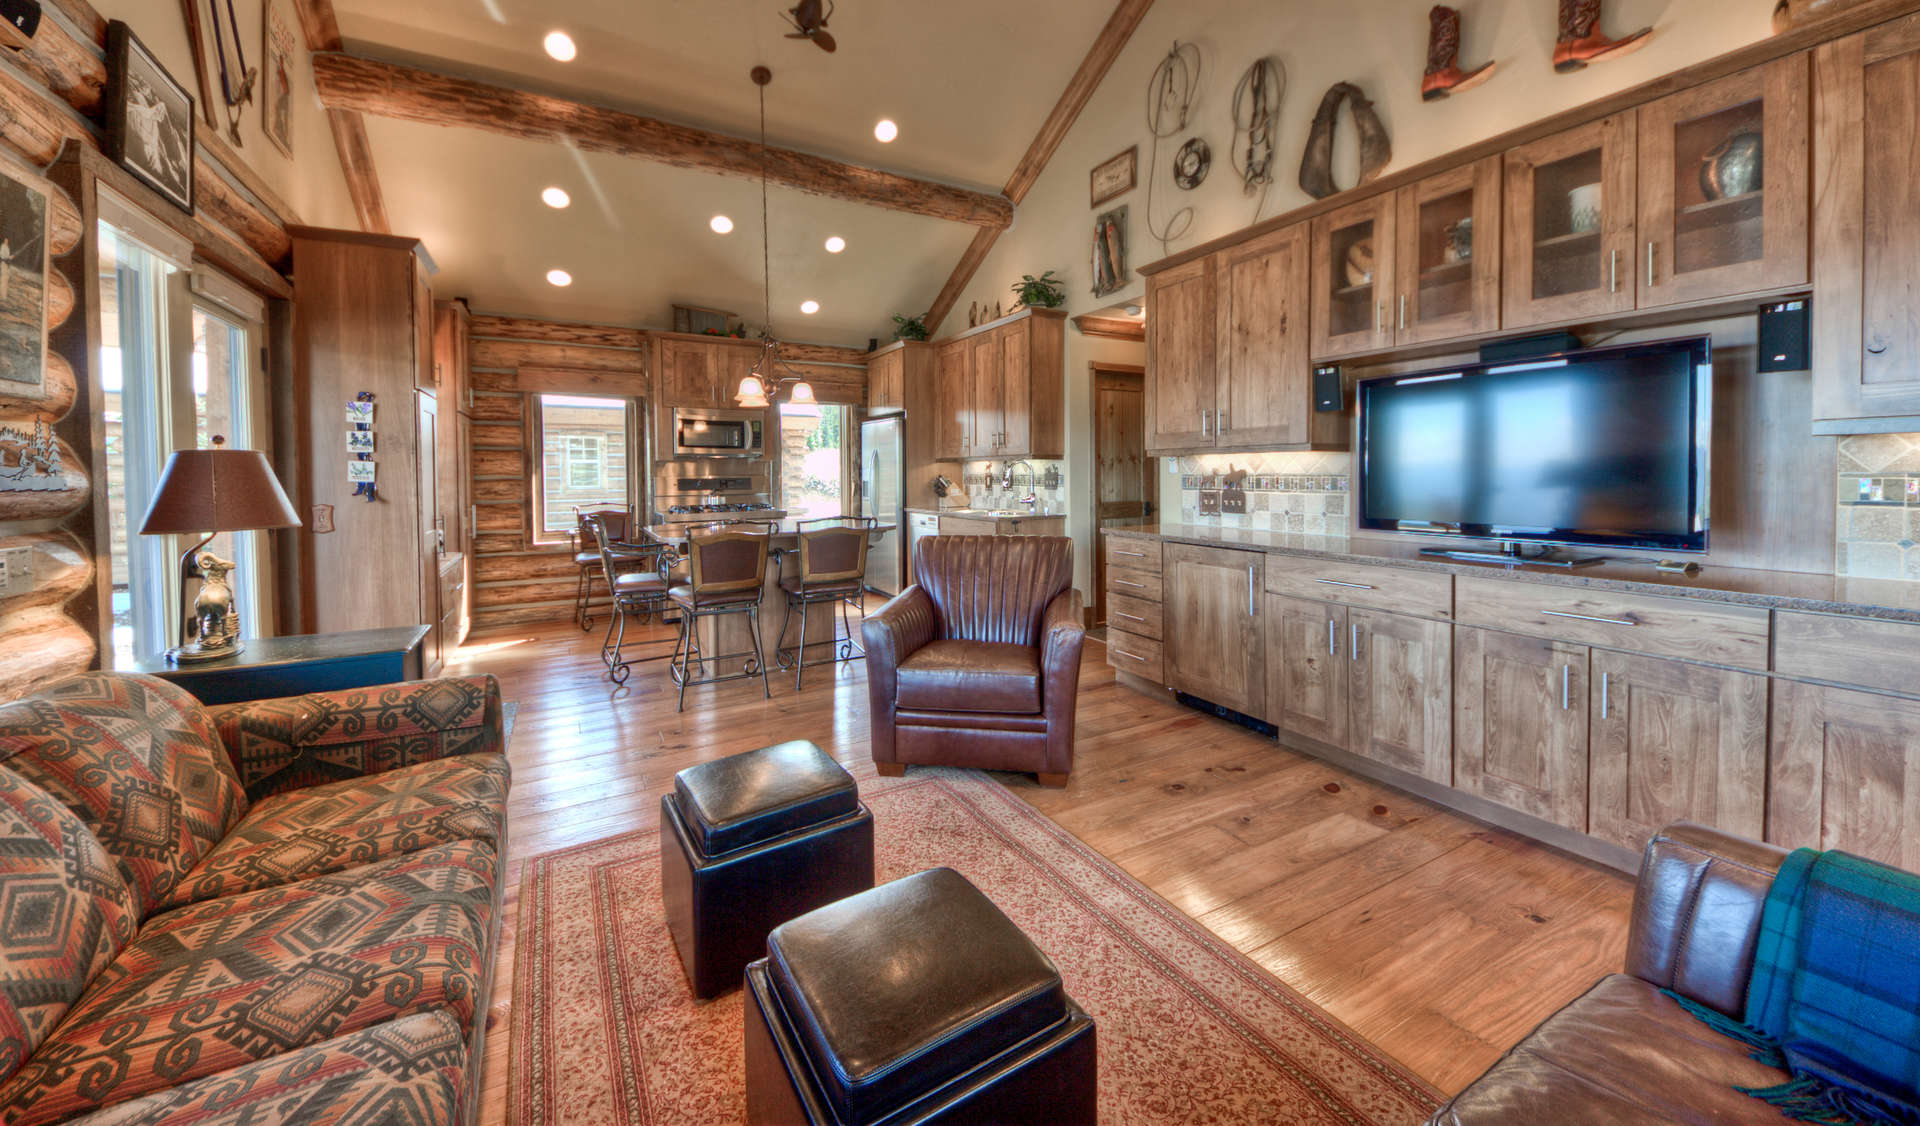 Luxury vacation rentals usa - Montana - Big sky - Cowboy heaven - 13 Bandit Way - Image 1/10